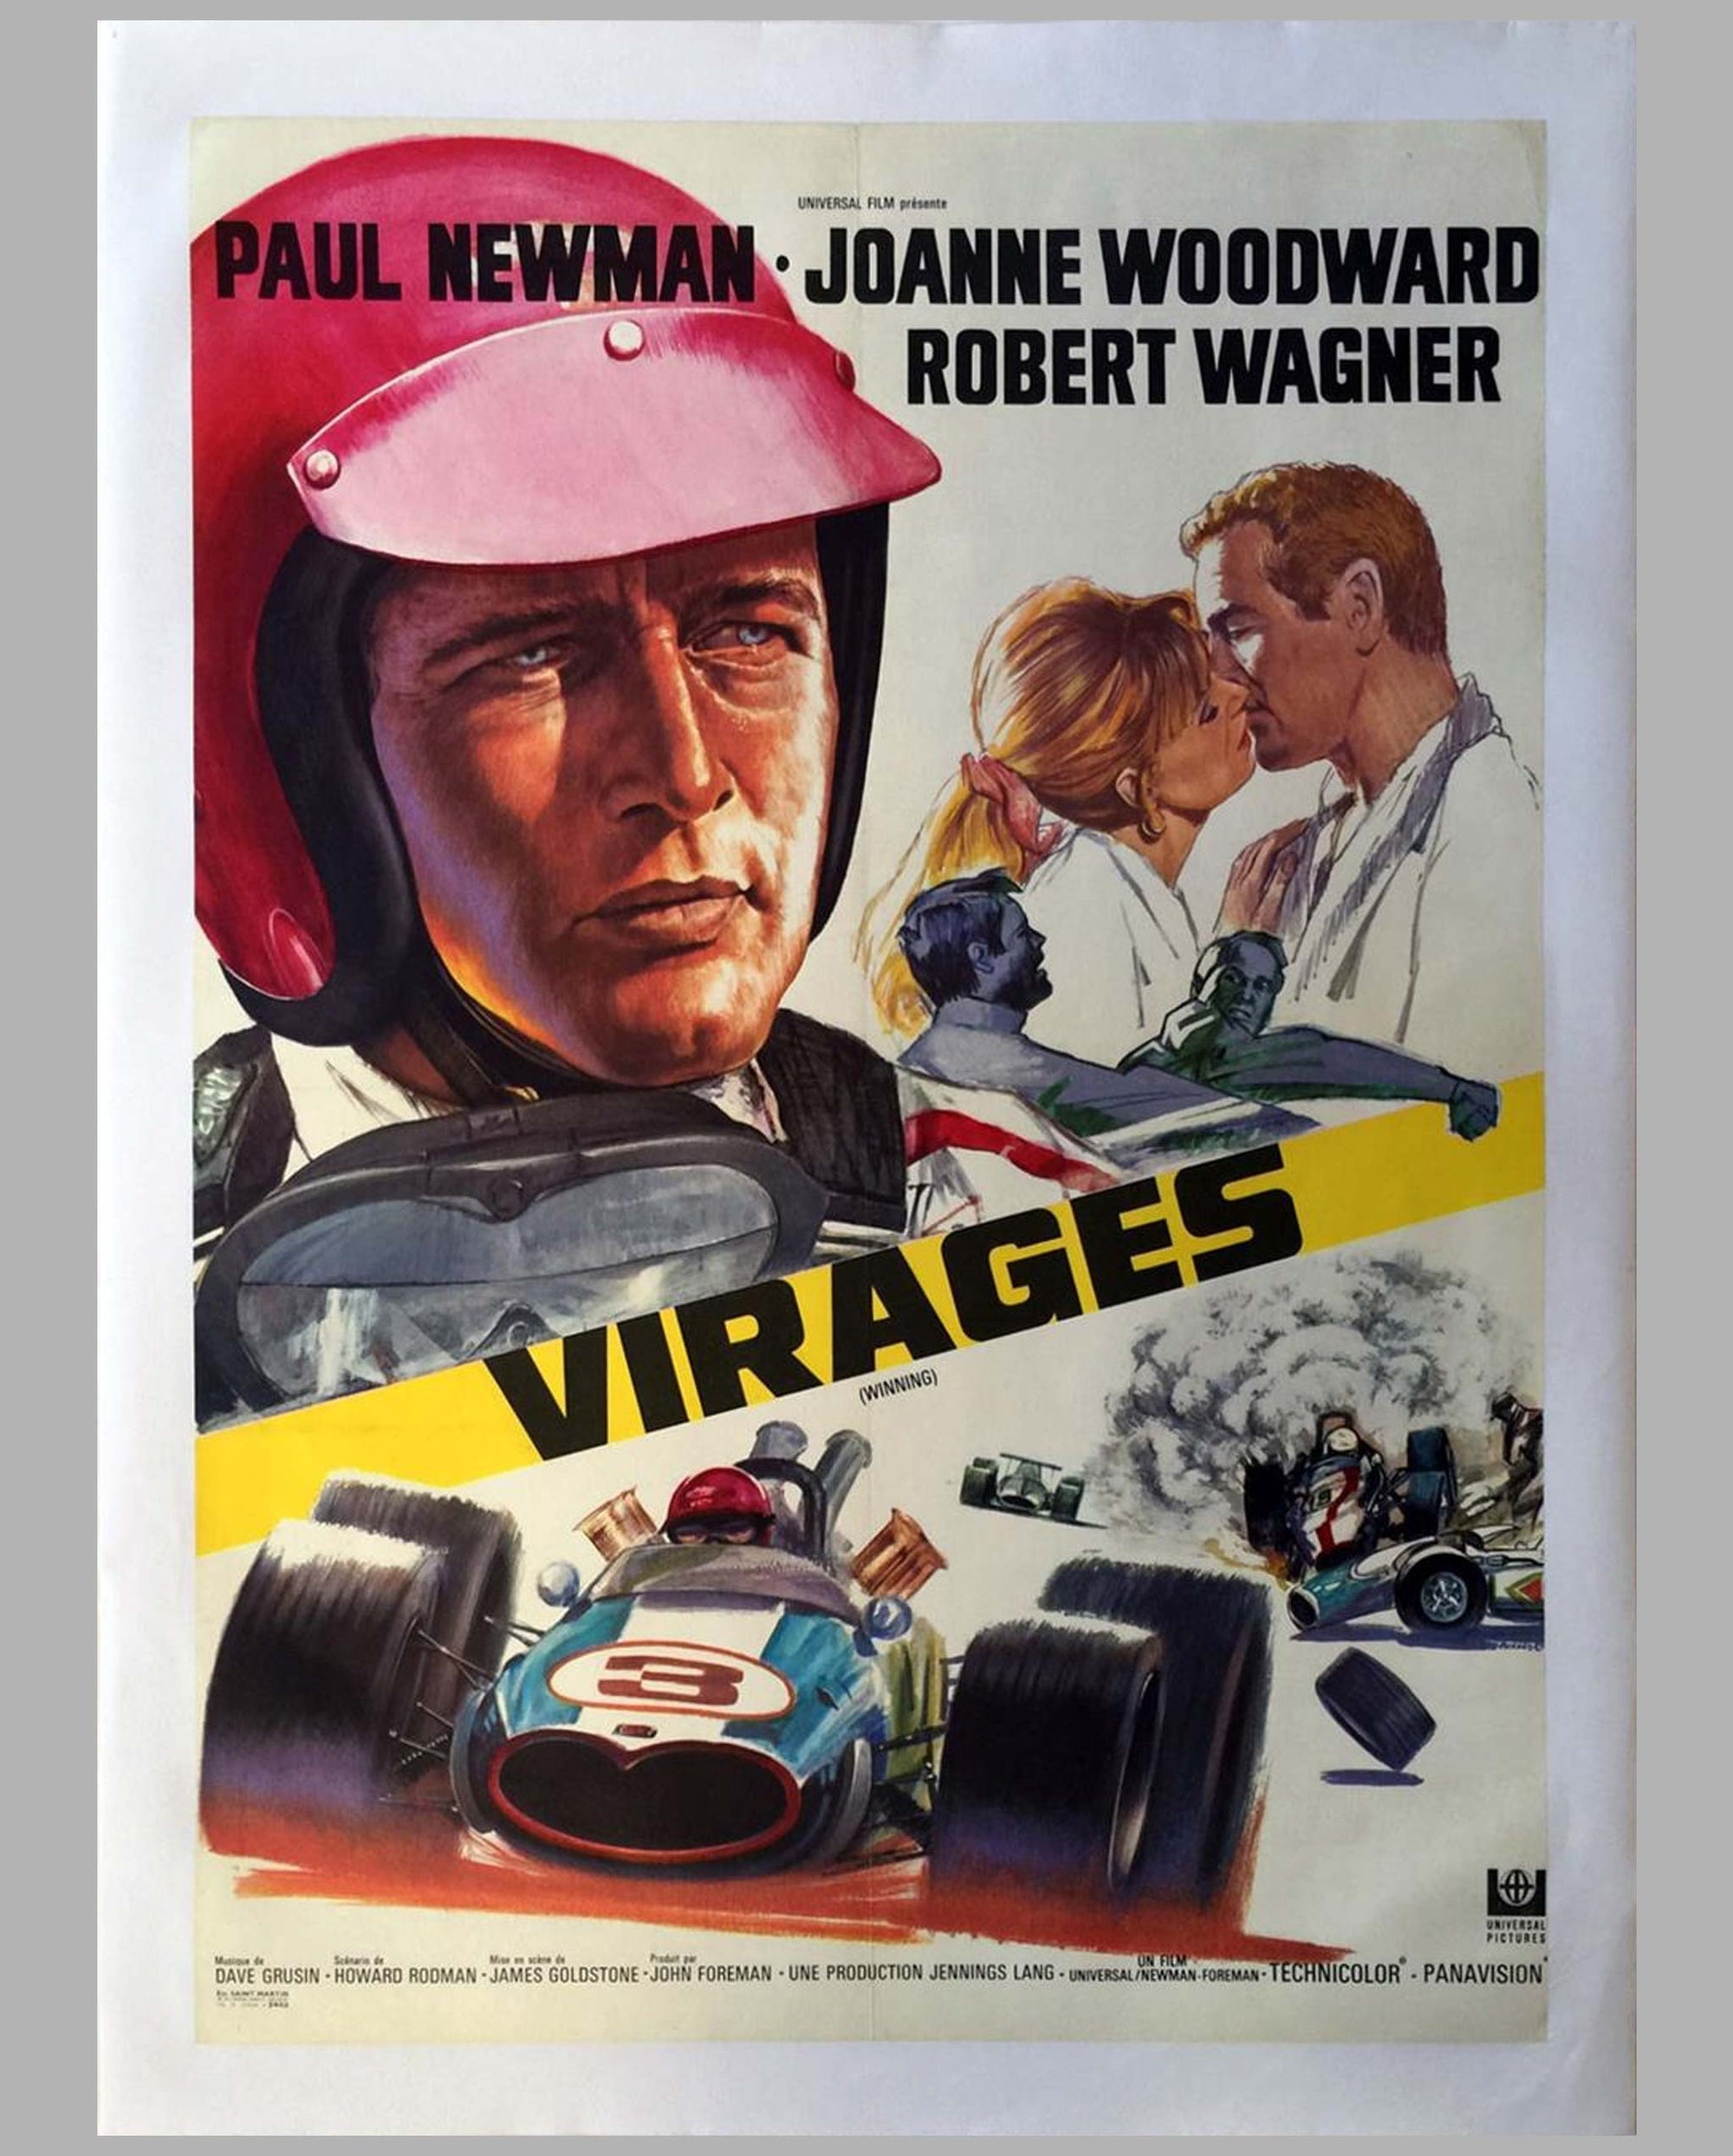 1969 original movie poster, Paul Newman in 'Virages' (Winning)